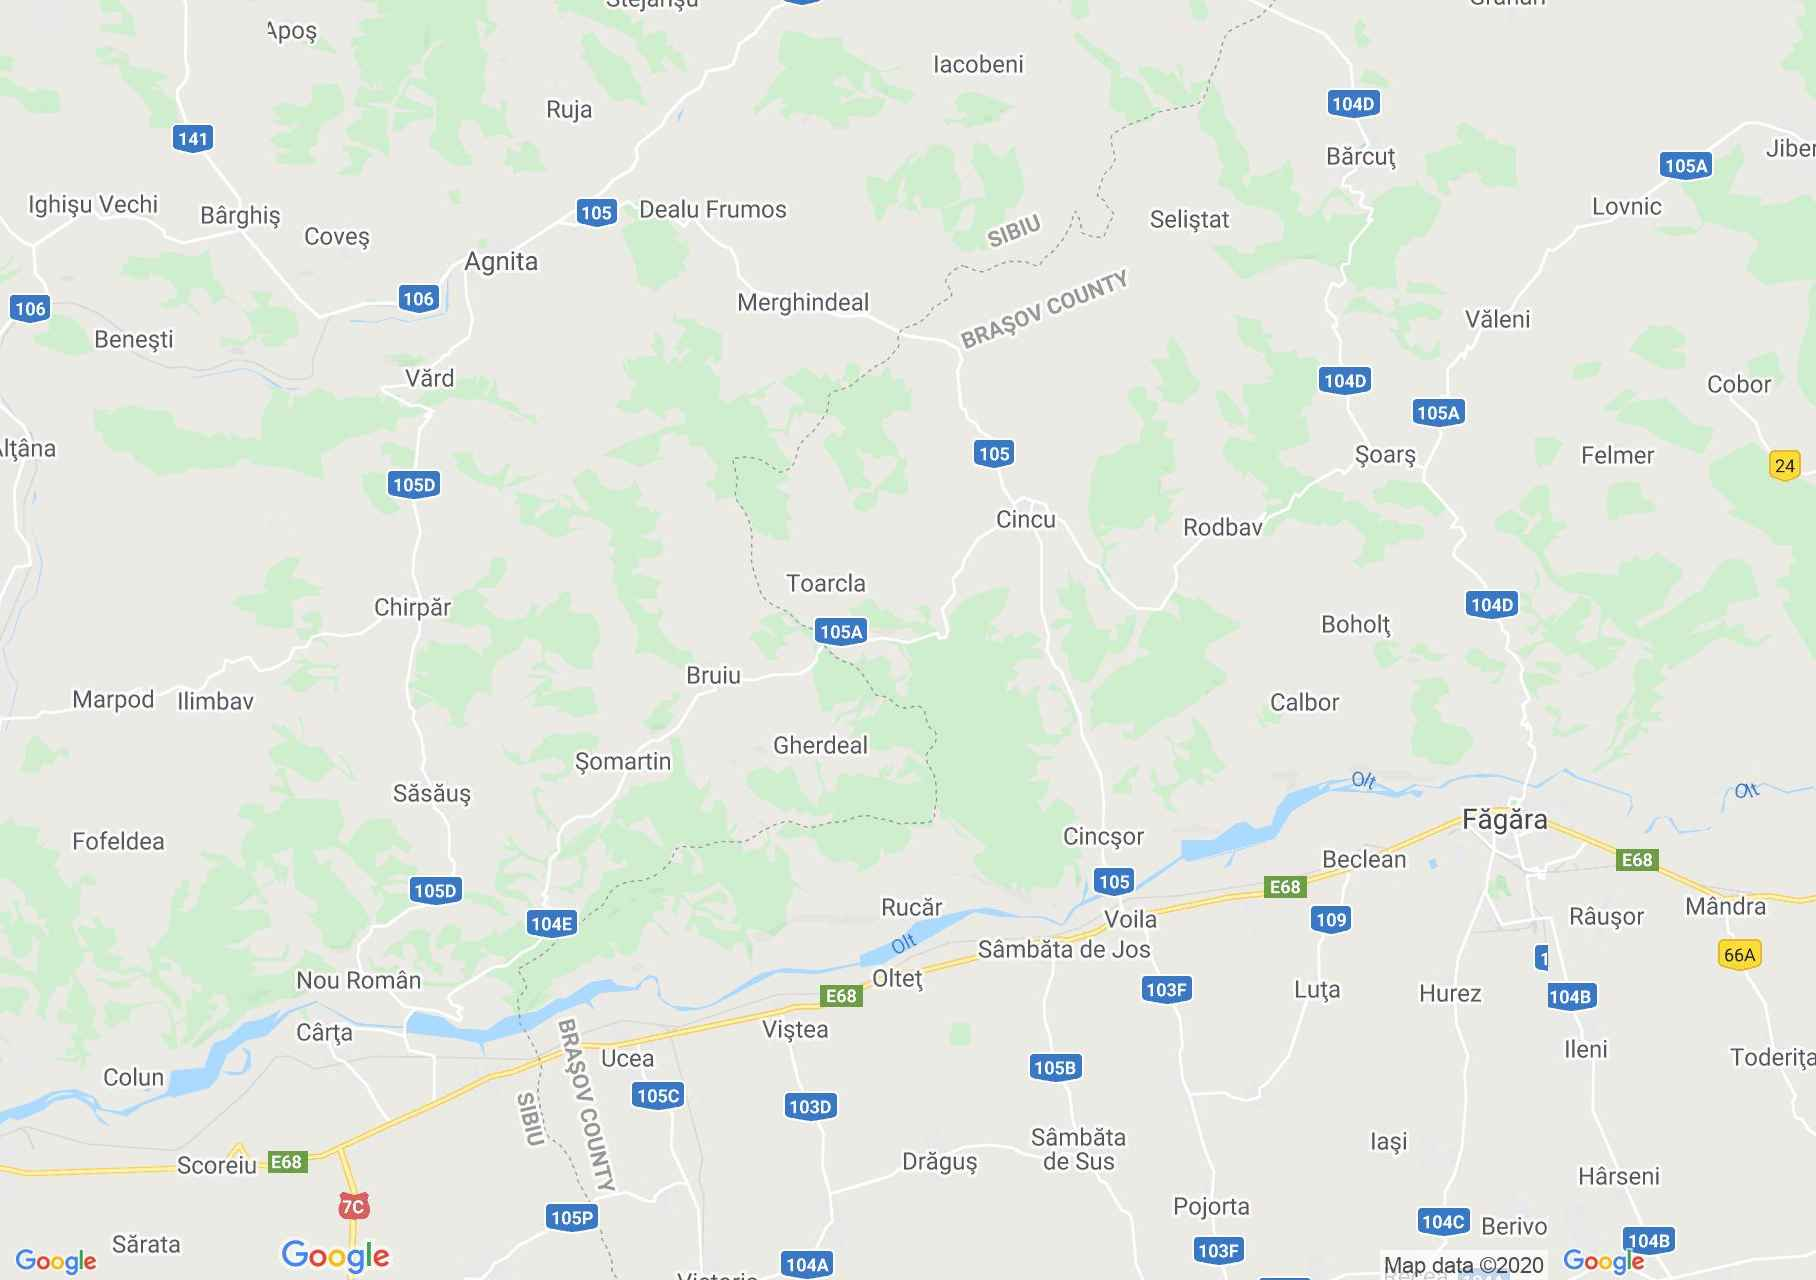 Olt valey: from Sibiu to Făgăraş, Interactive tourist map